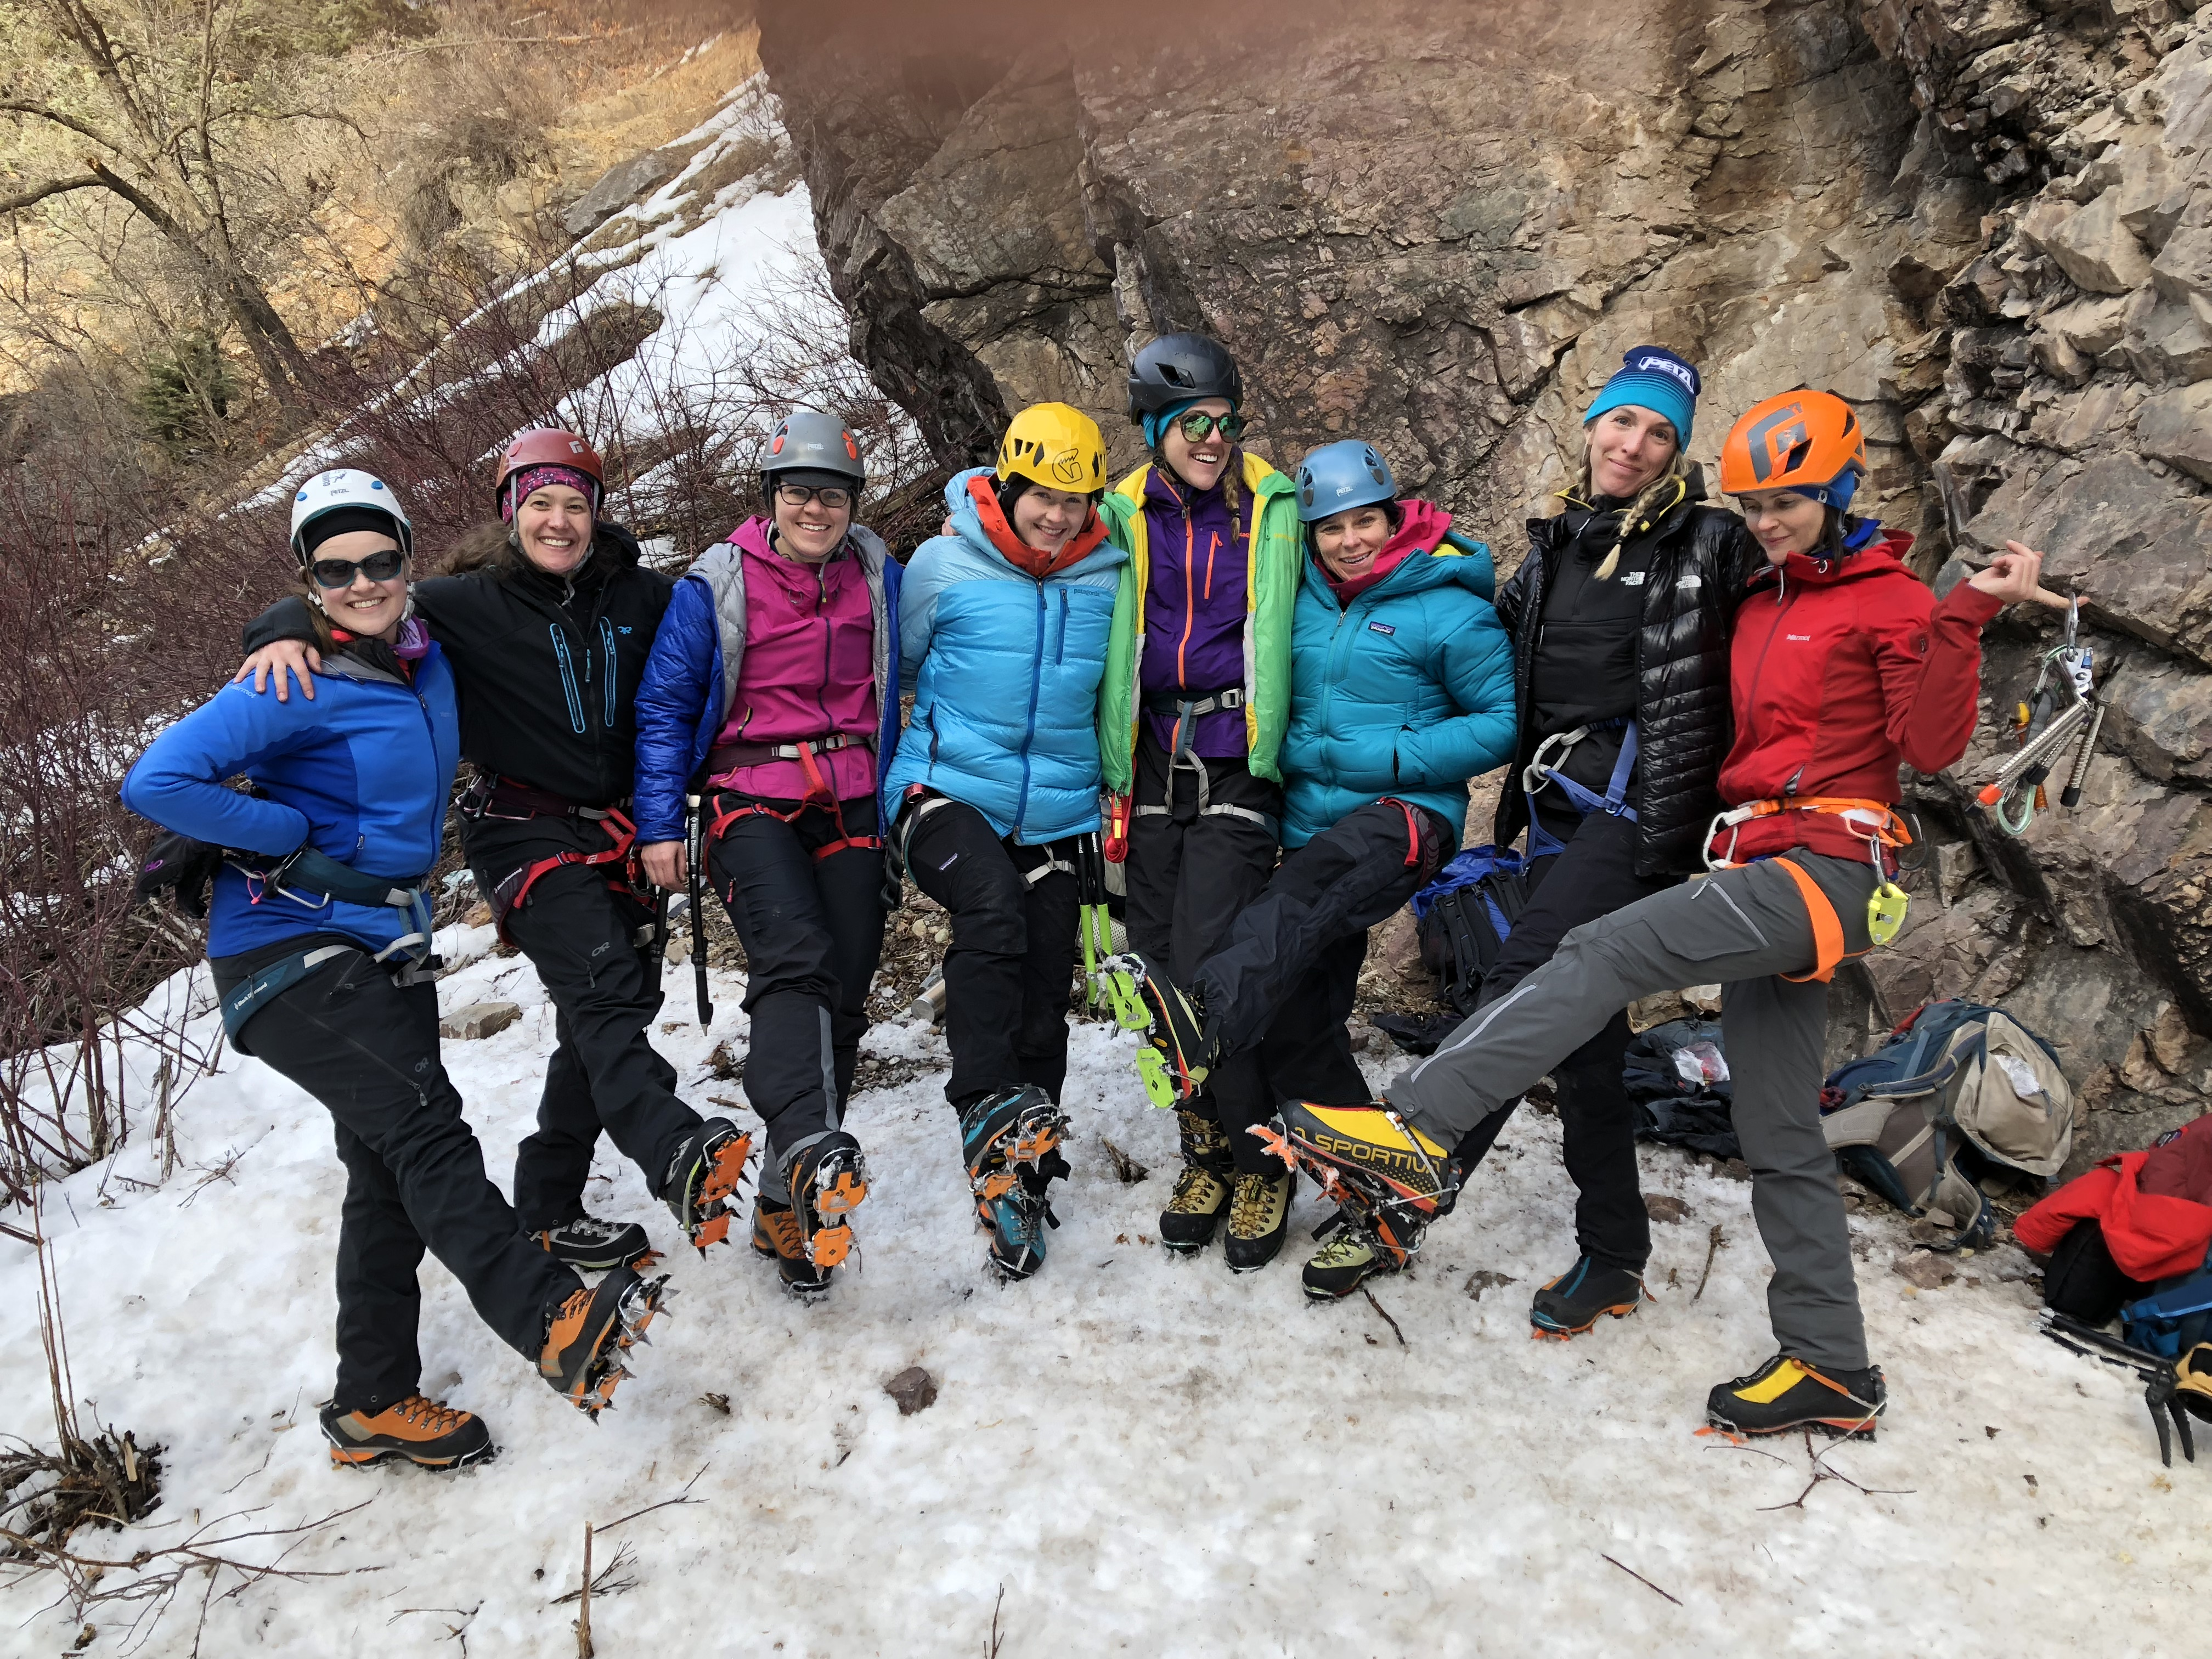 Doing the Crampon Dance. Kelly Clarke, third from left, won the 2017 Subaru Adventure Team Women's Ice Climbing Scholarship @Elaina Arenz